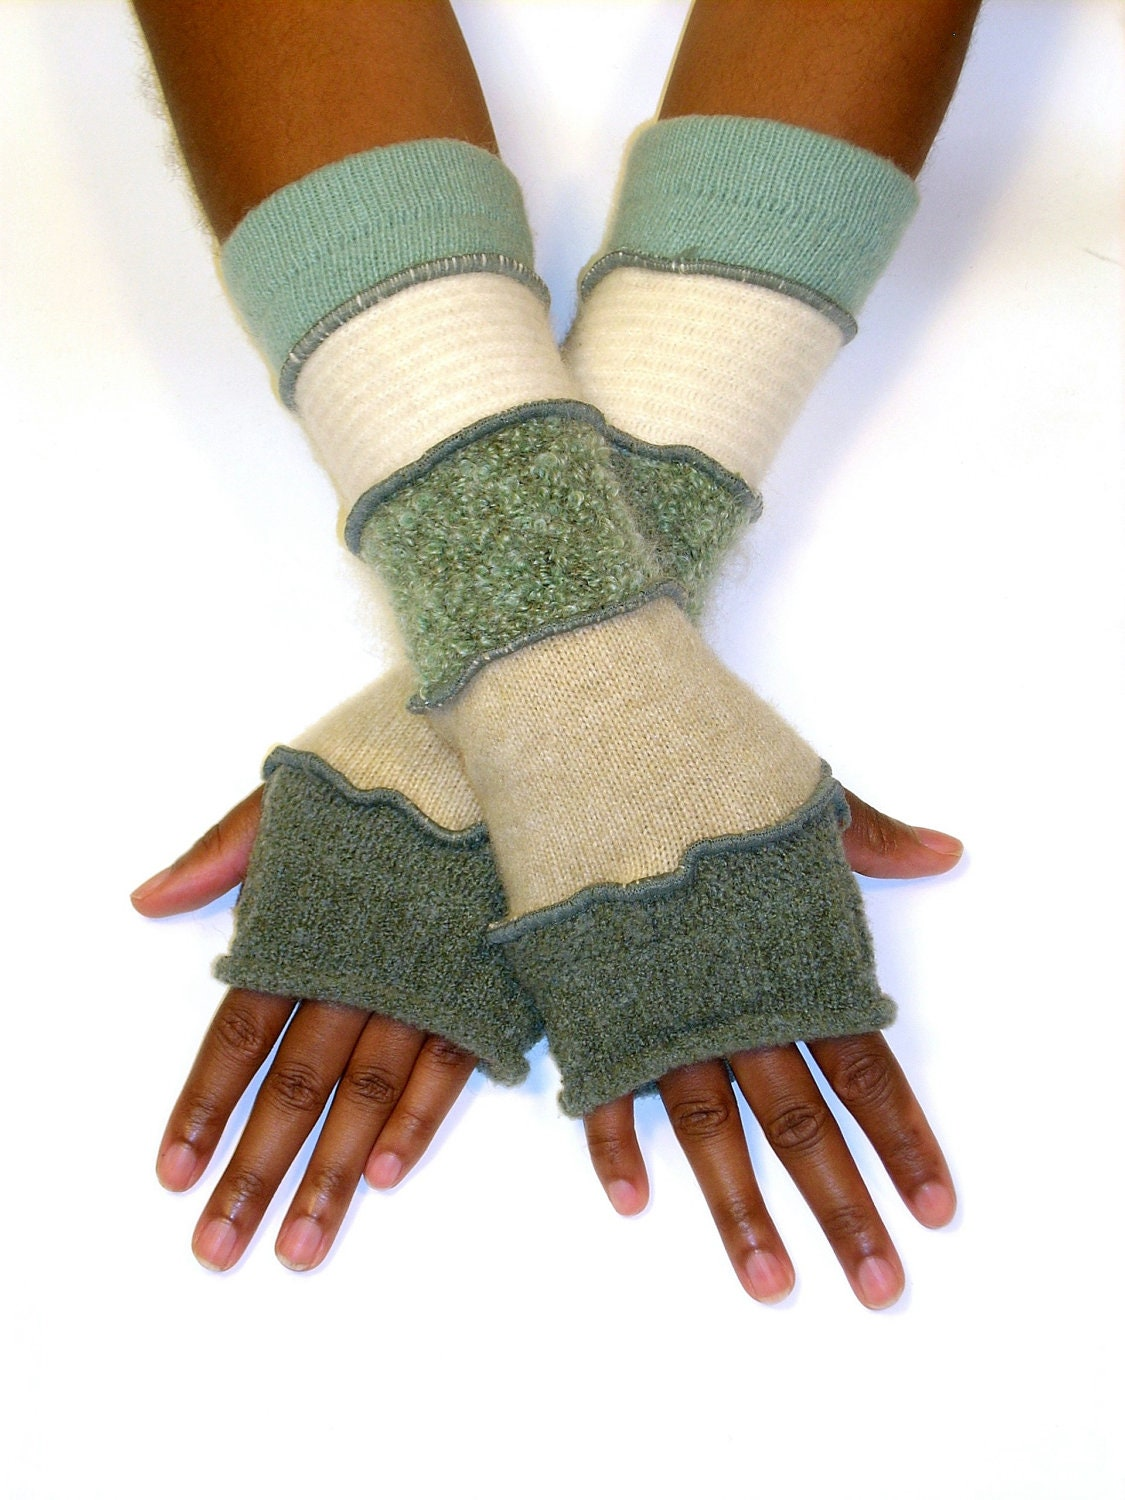 Fingerless Gloves, Arm Warmers, Soft Green And Beige (Sage, Beige, Sage Boucle, Cream, Pale Aqua) - Brendaabdullah